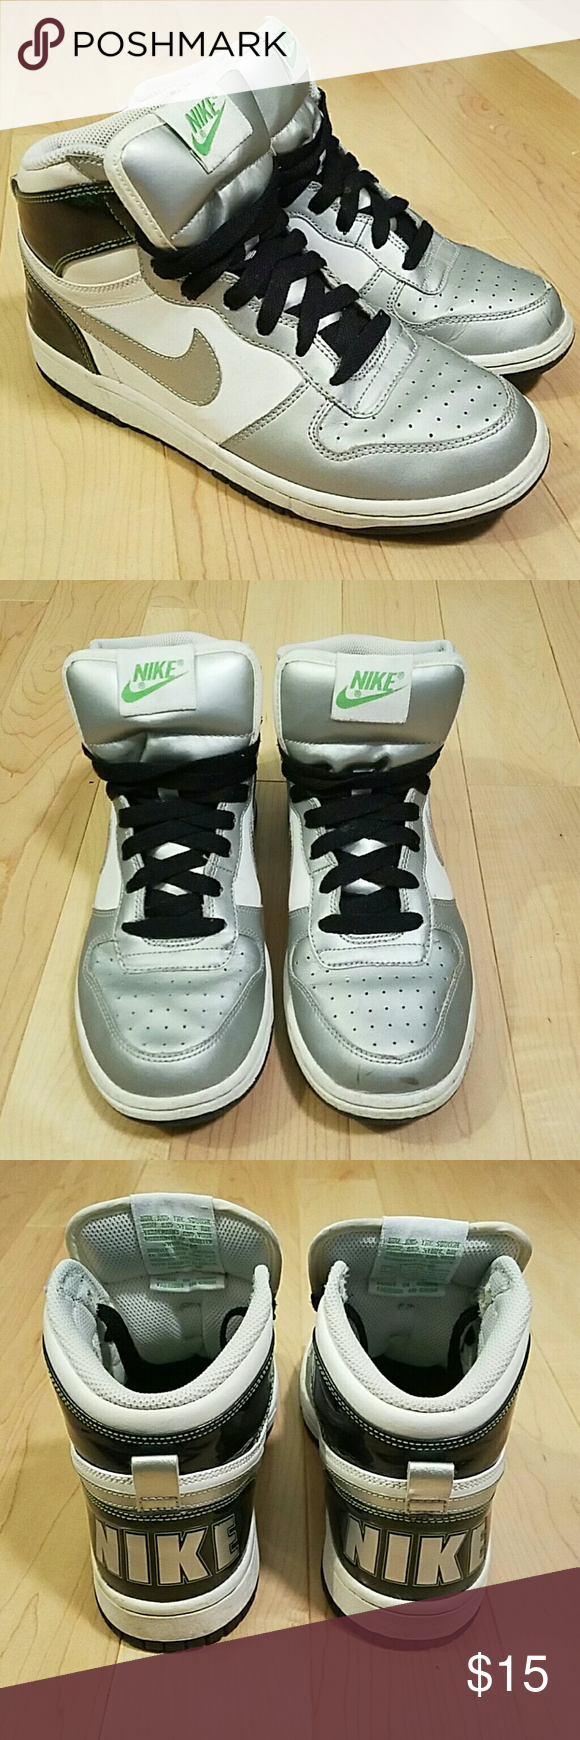 Nike high top sneakers Metallic, white, and black with small green details Nike Shoes Sneakers